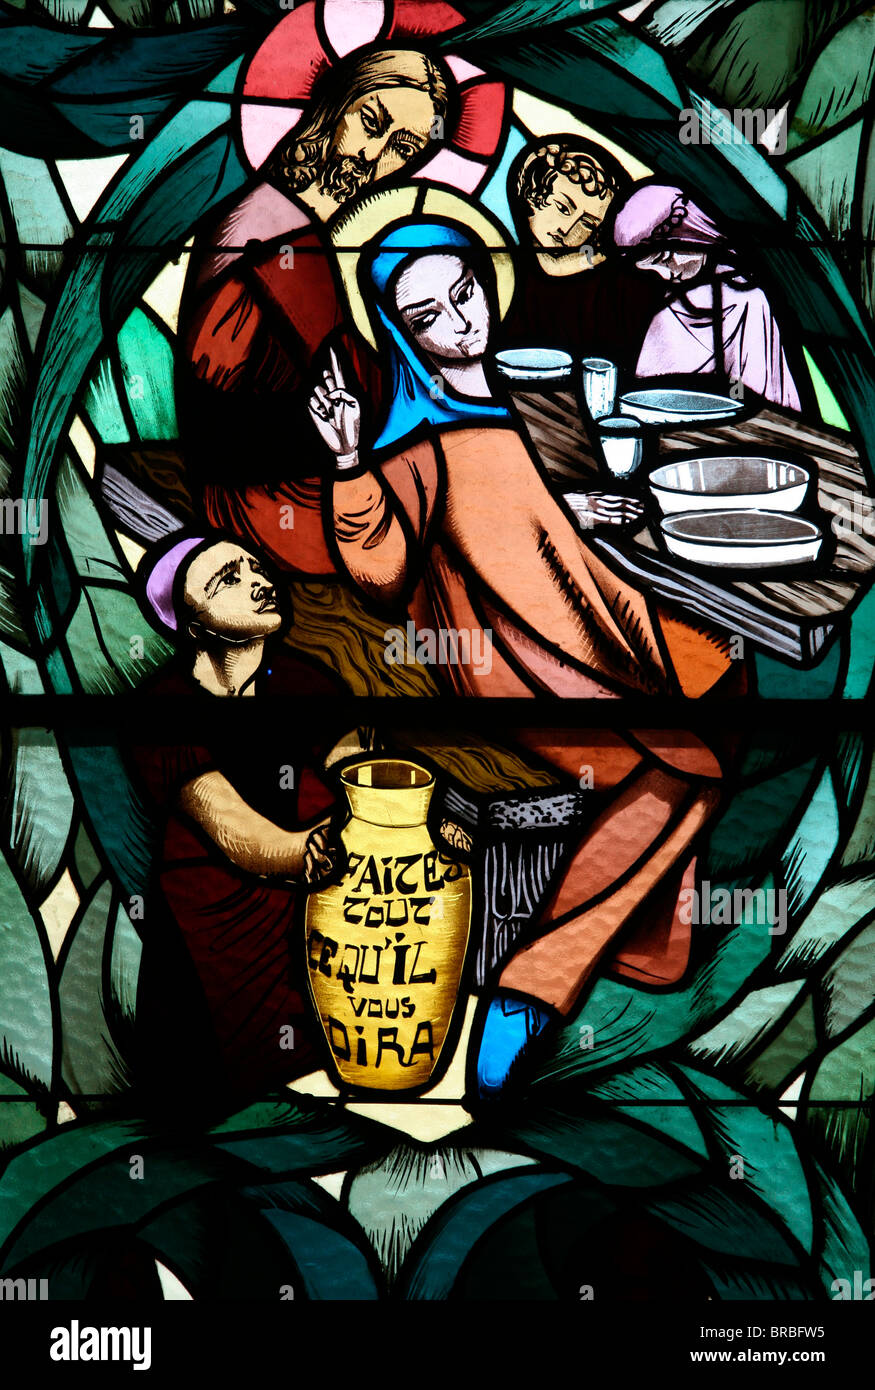 Stained glass window of the Cana wedding feast, Saint-Joseph des Fins church, Annecy, Haute Savoie, France Stock Photo